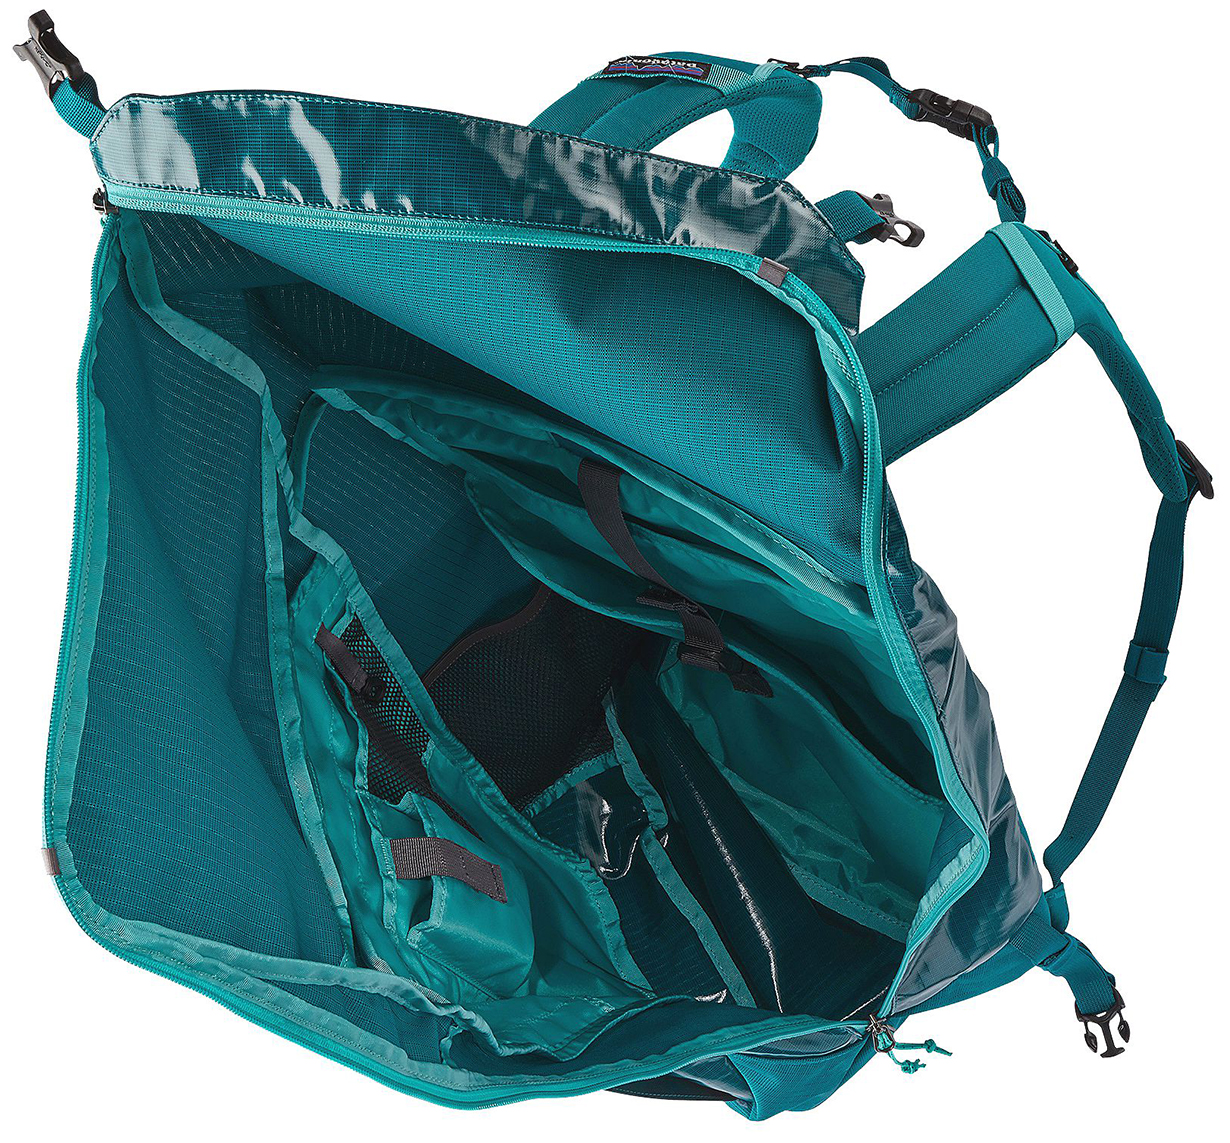 Luke Koppa reviews the Patagonia Black Hole 32L Backpack for Blister Review